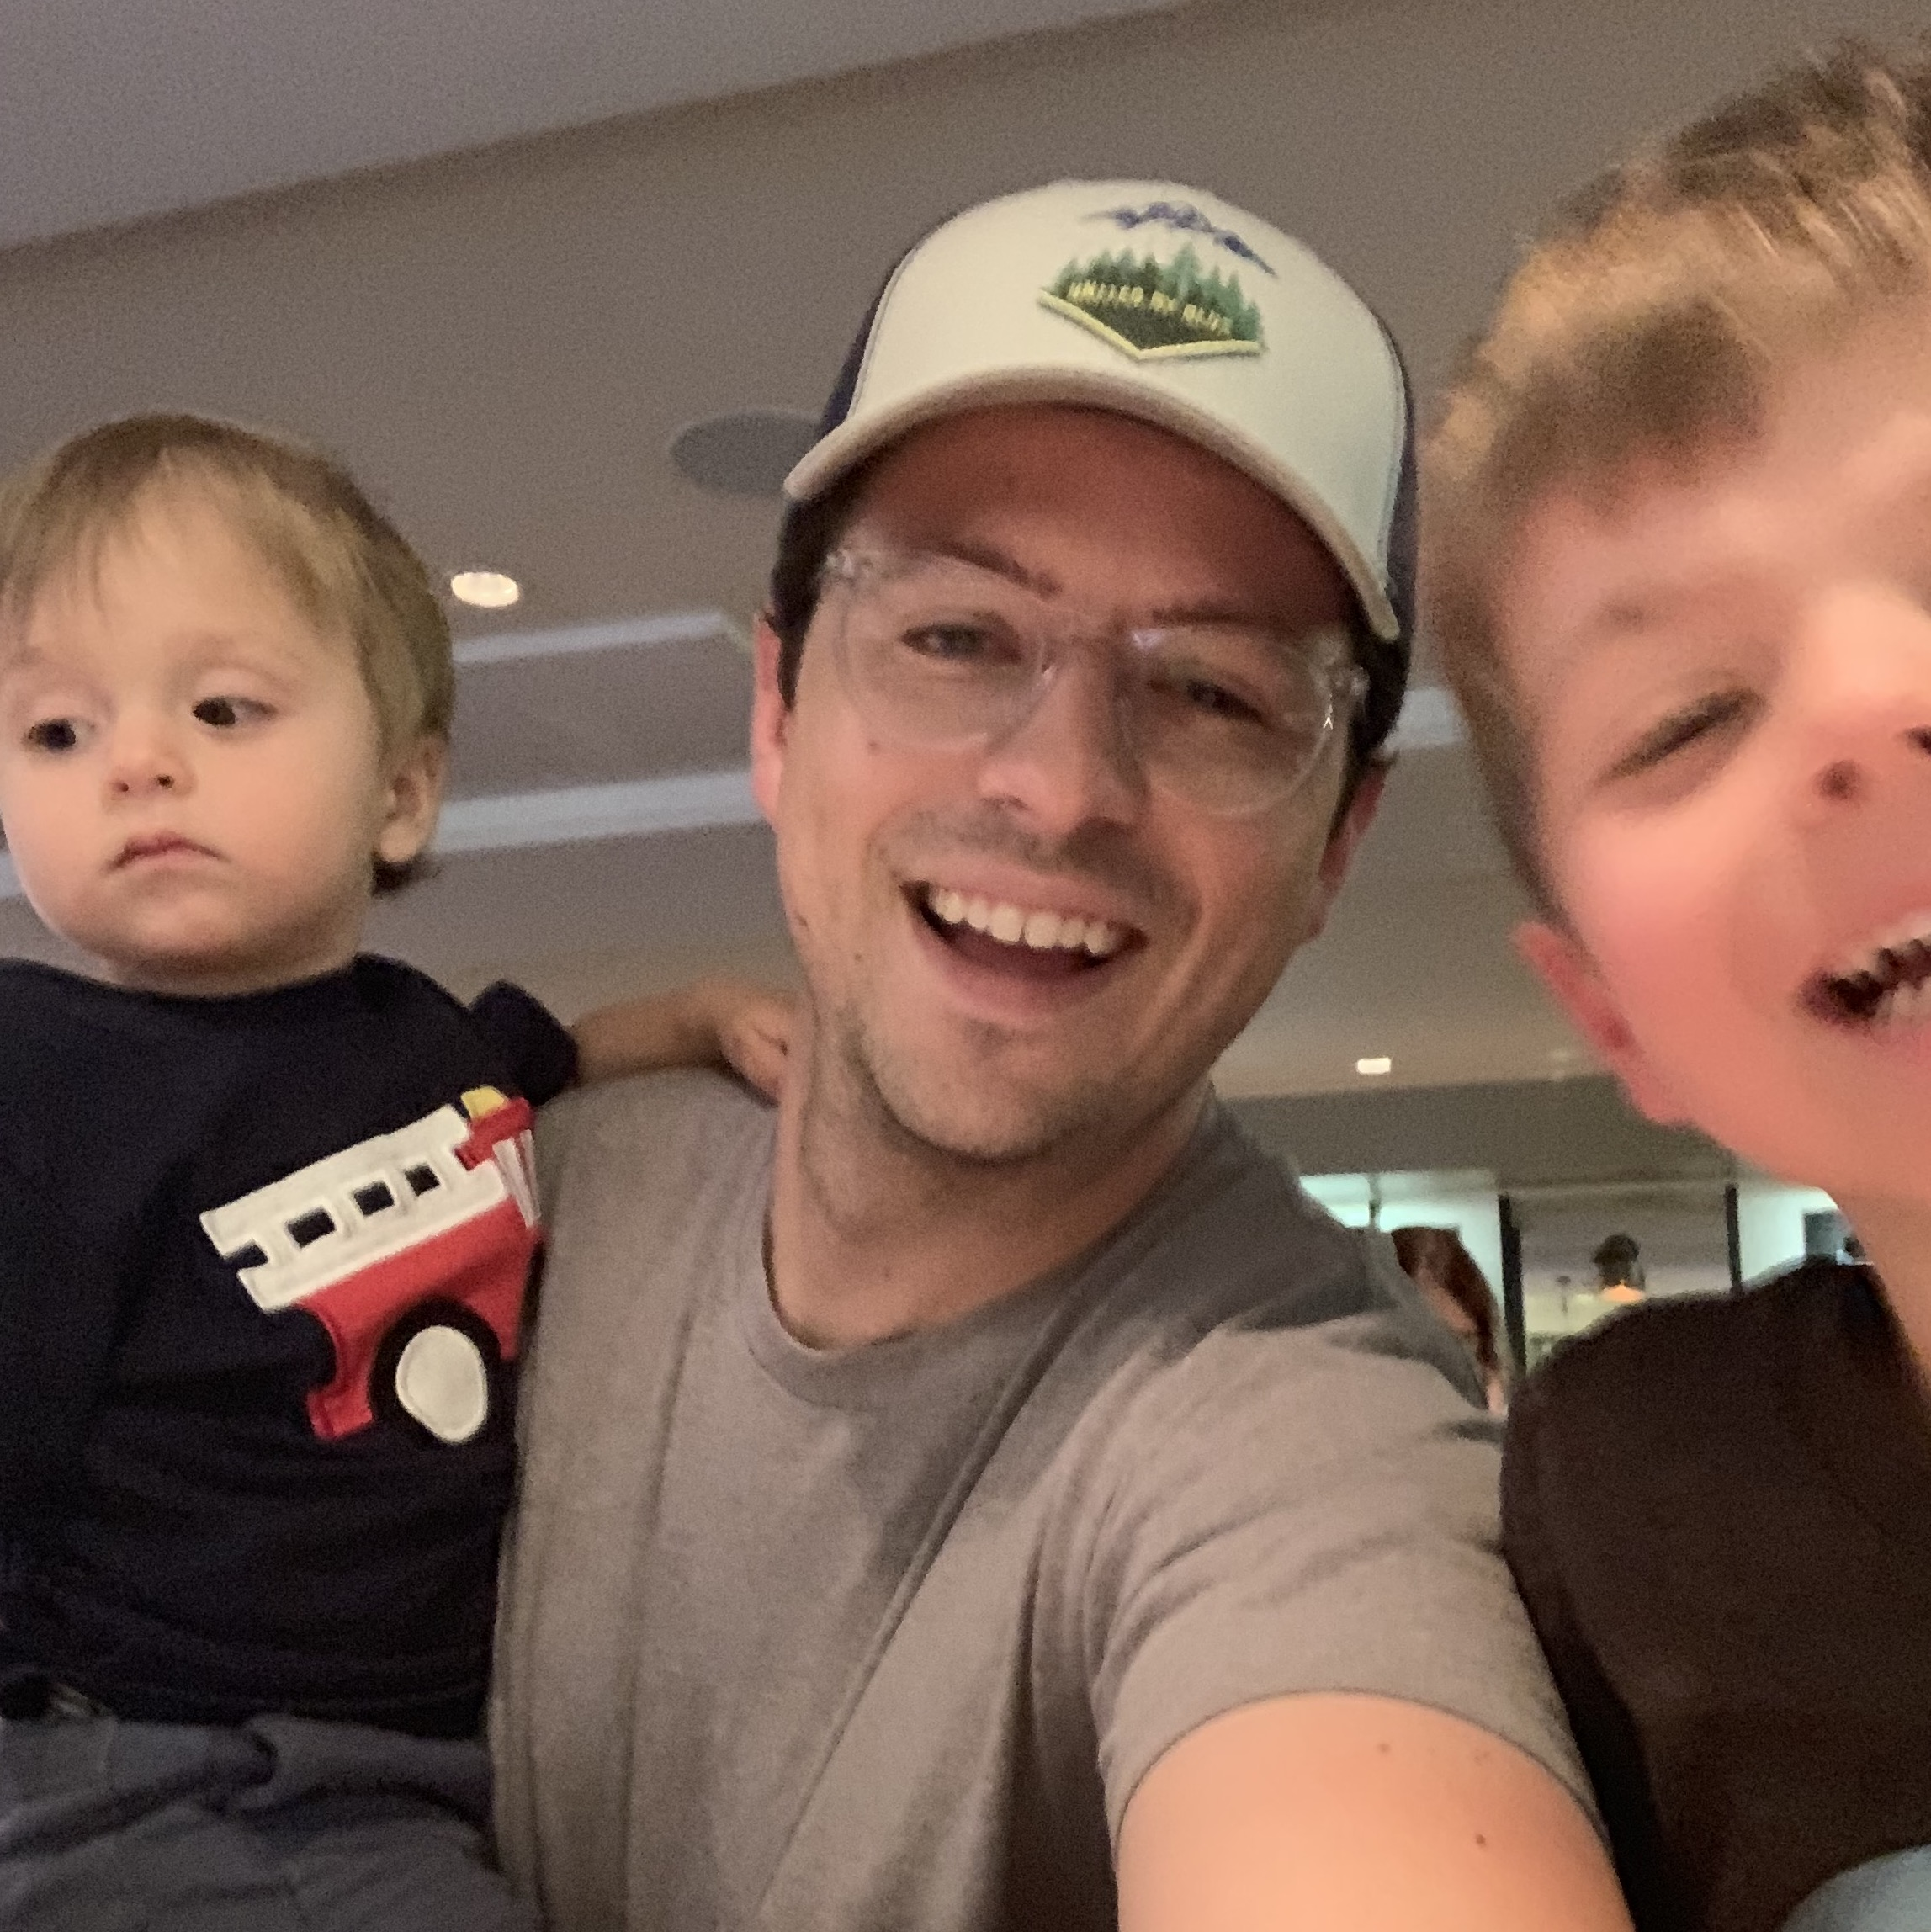 Bryan smiling indoors with two of his children